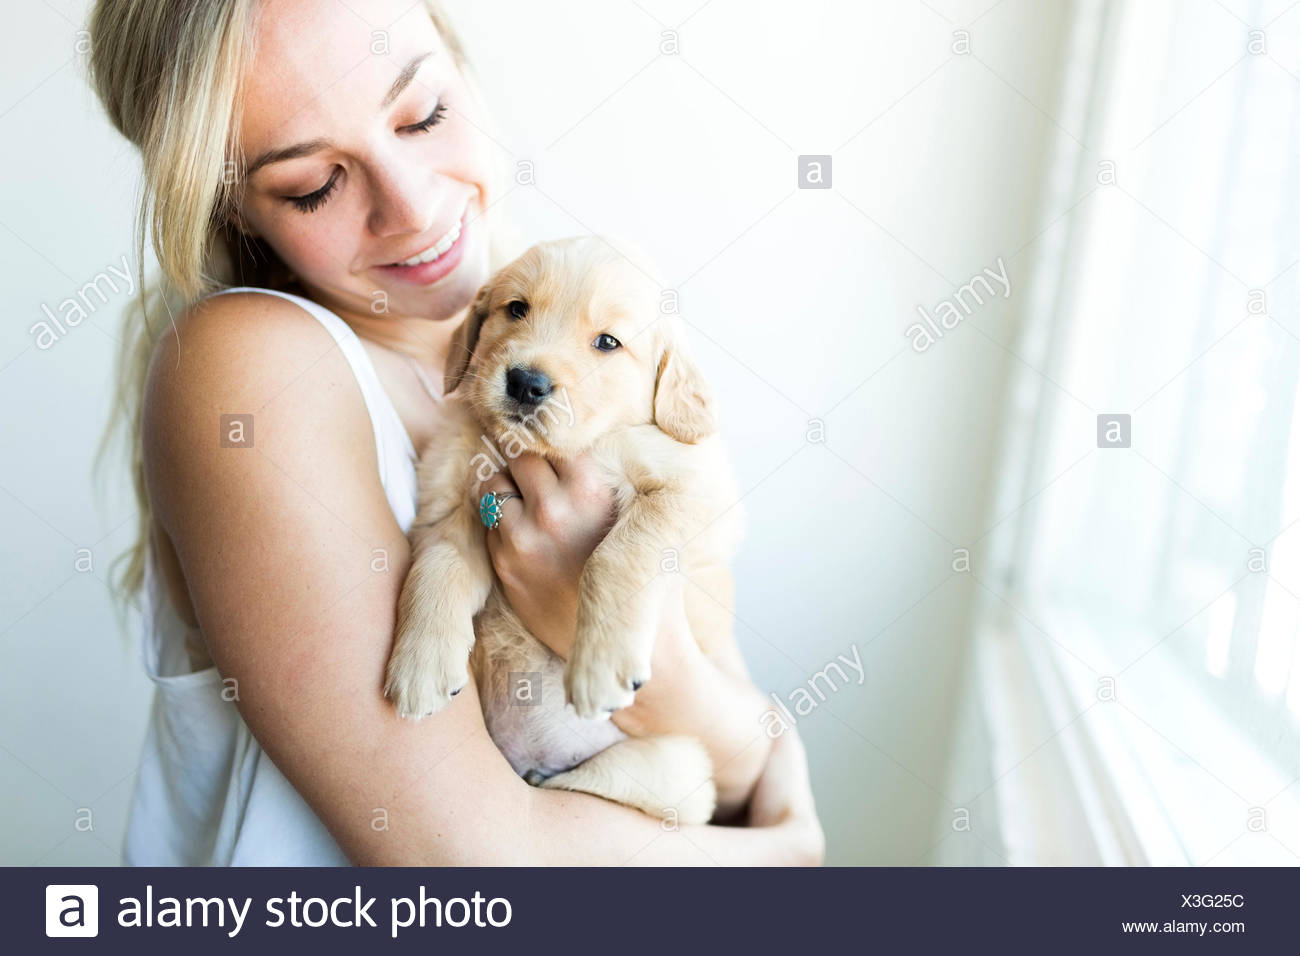 Woman holding Golden Retriever puppy - Stock Image